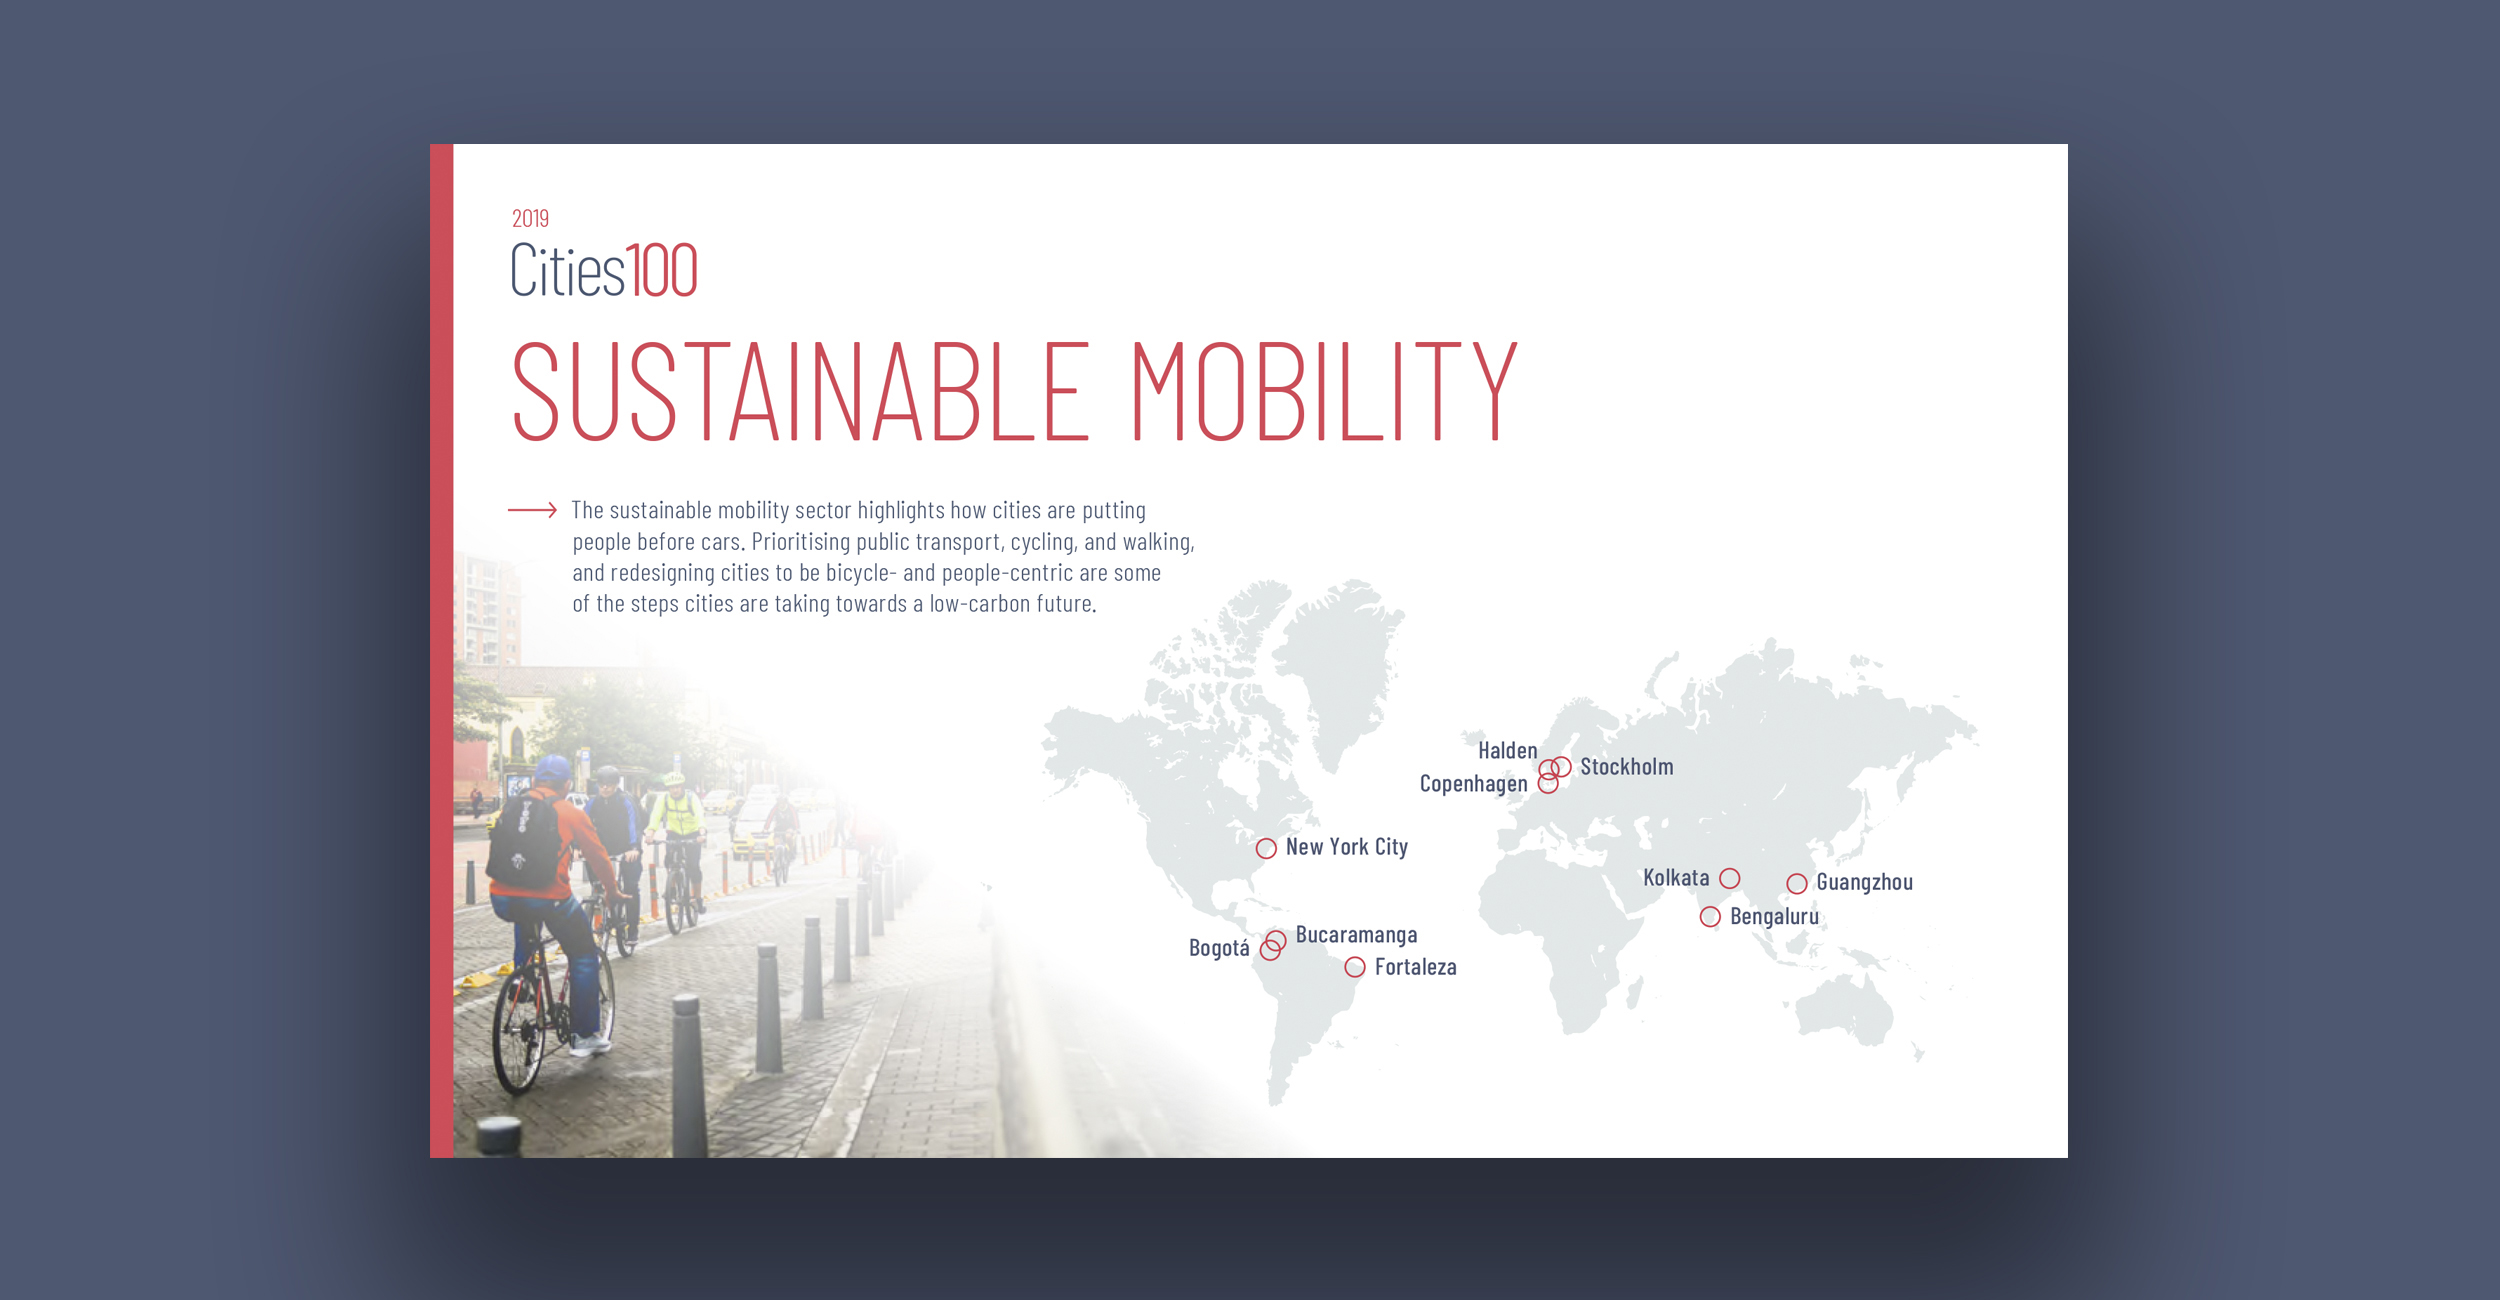 Sustainable Mobility - The sustainable mobility sector highlights how cities are putting people before cars. Prioritising public transport, cycling, and walking, and redesigning cities to be bicycle- and people-centric are some of the steps cities are taking towards a low-carbon future.